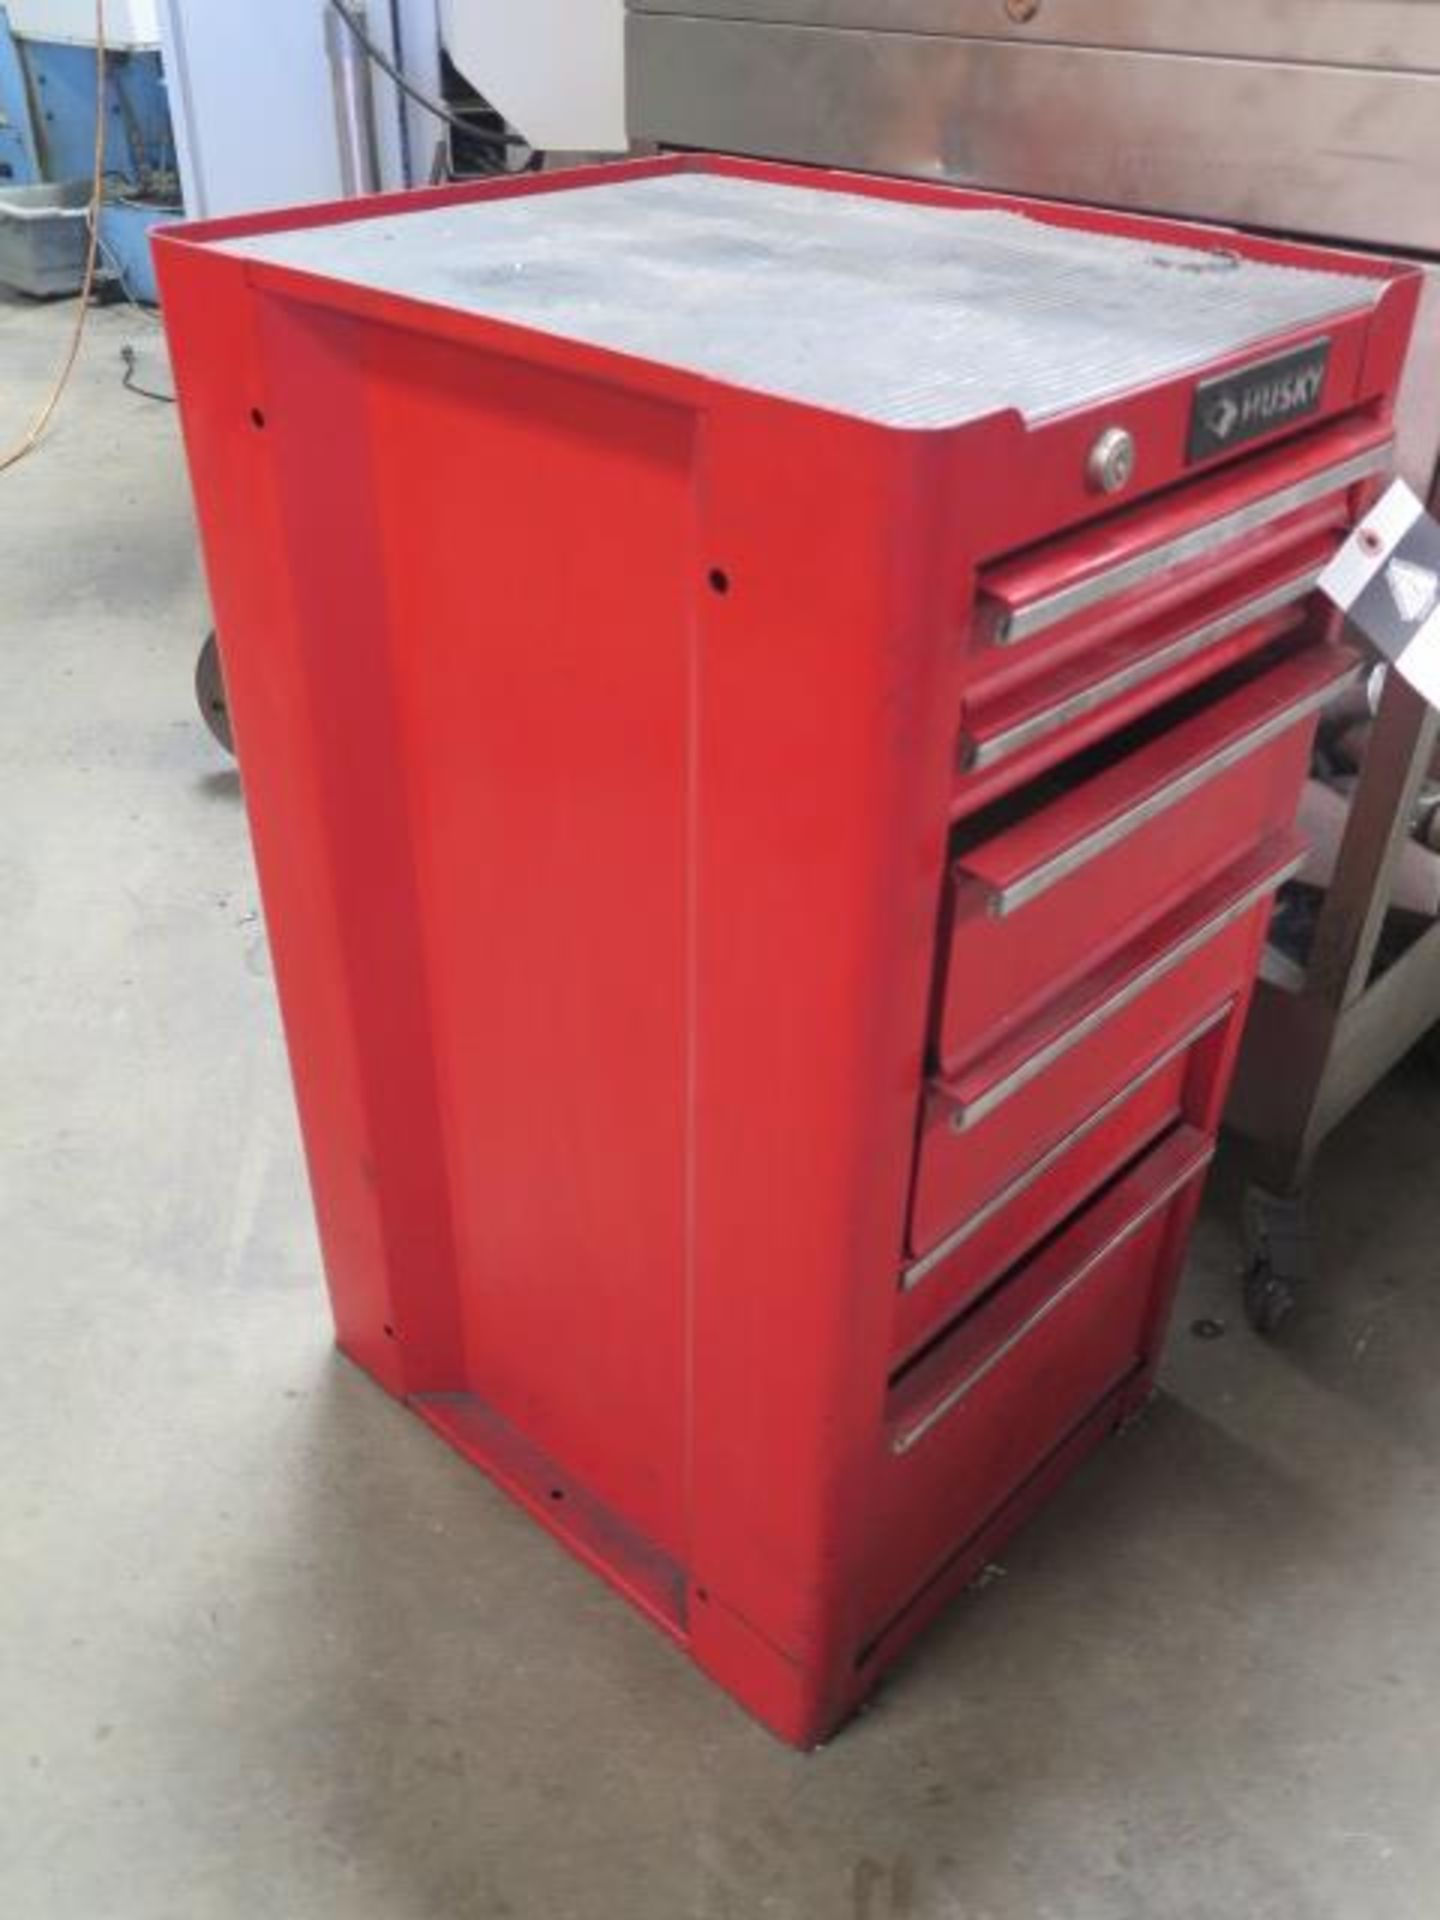 Husky 6-Drawer Tool Box (SOLD AS-IS - NO WARRANTY) - Image 2 of 8